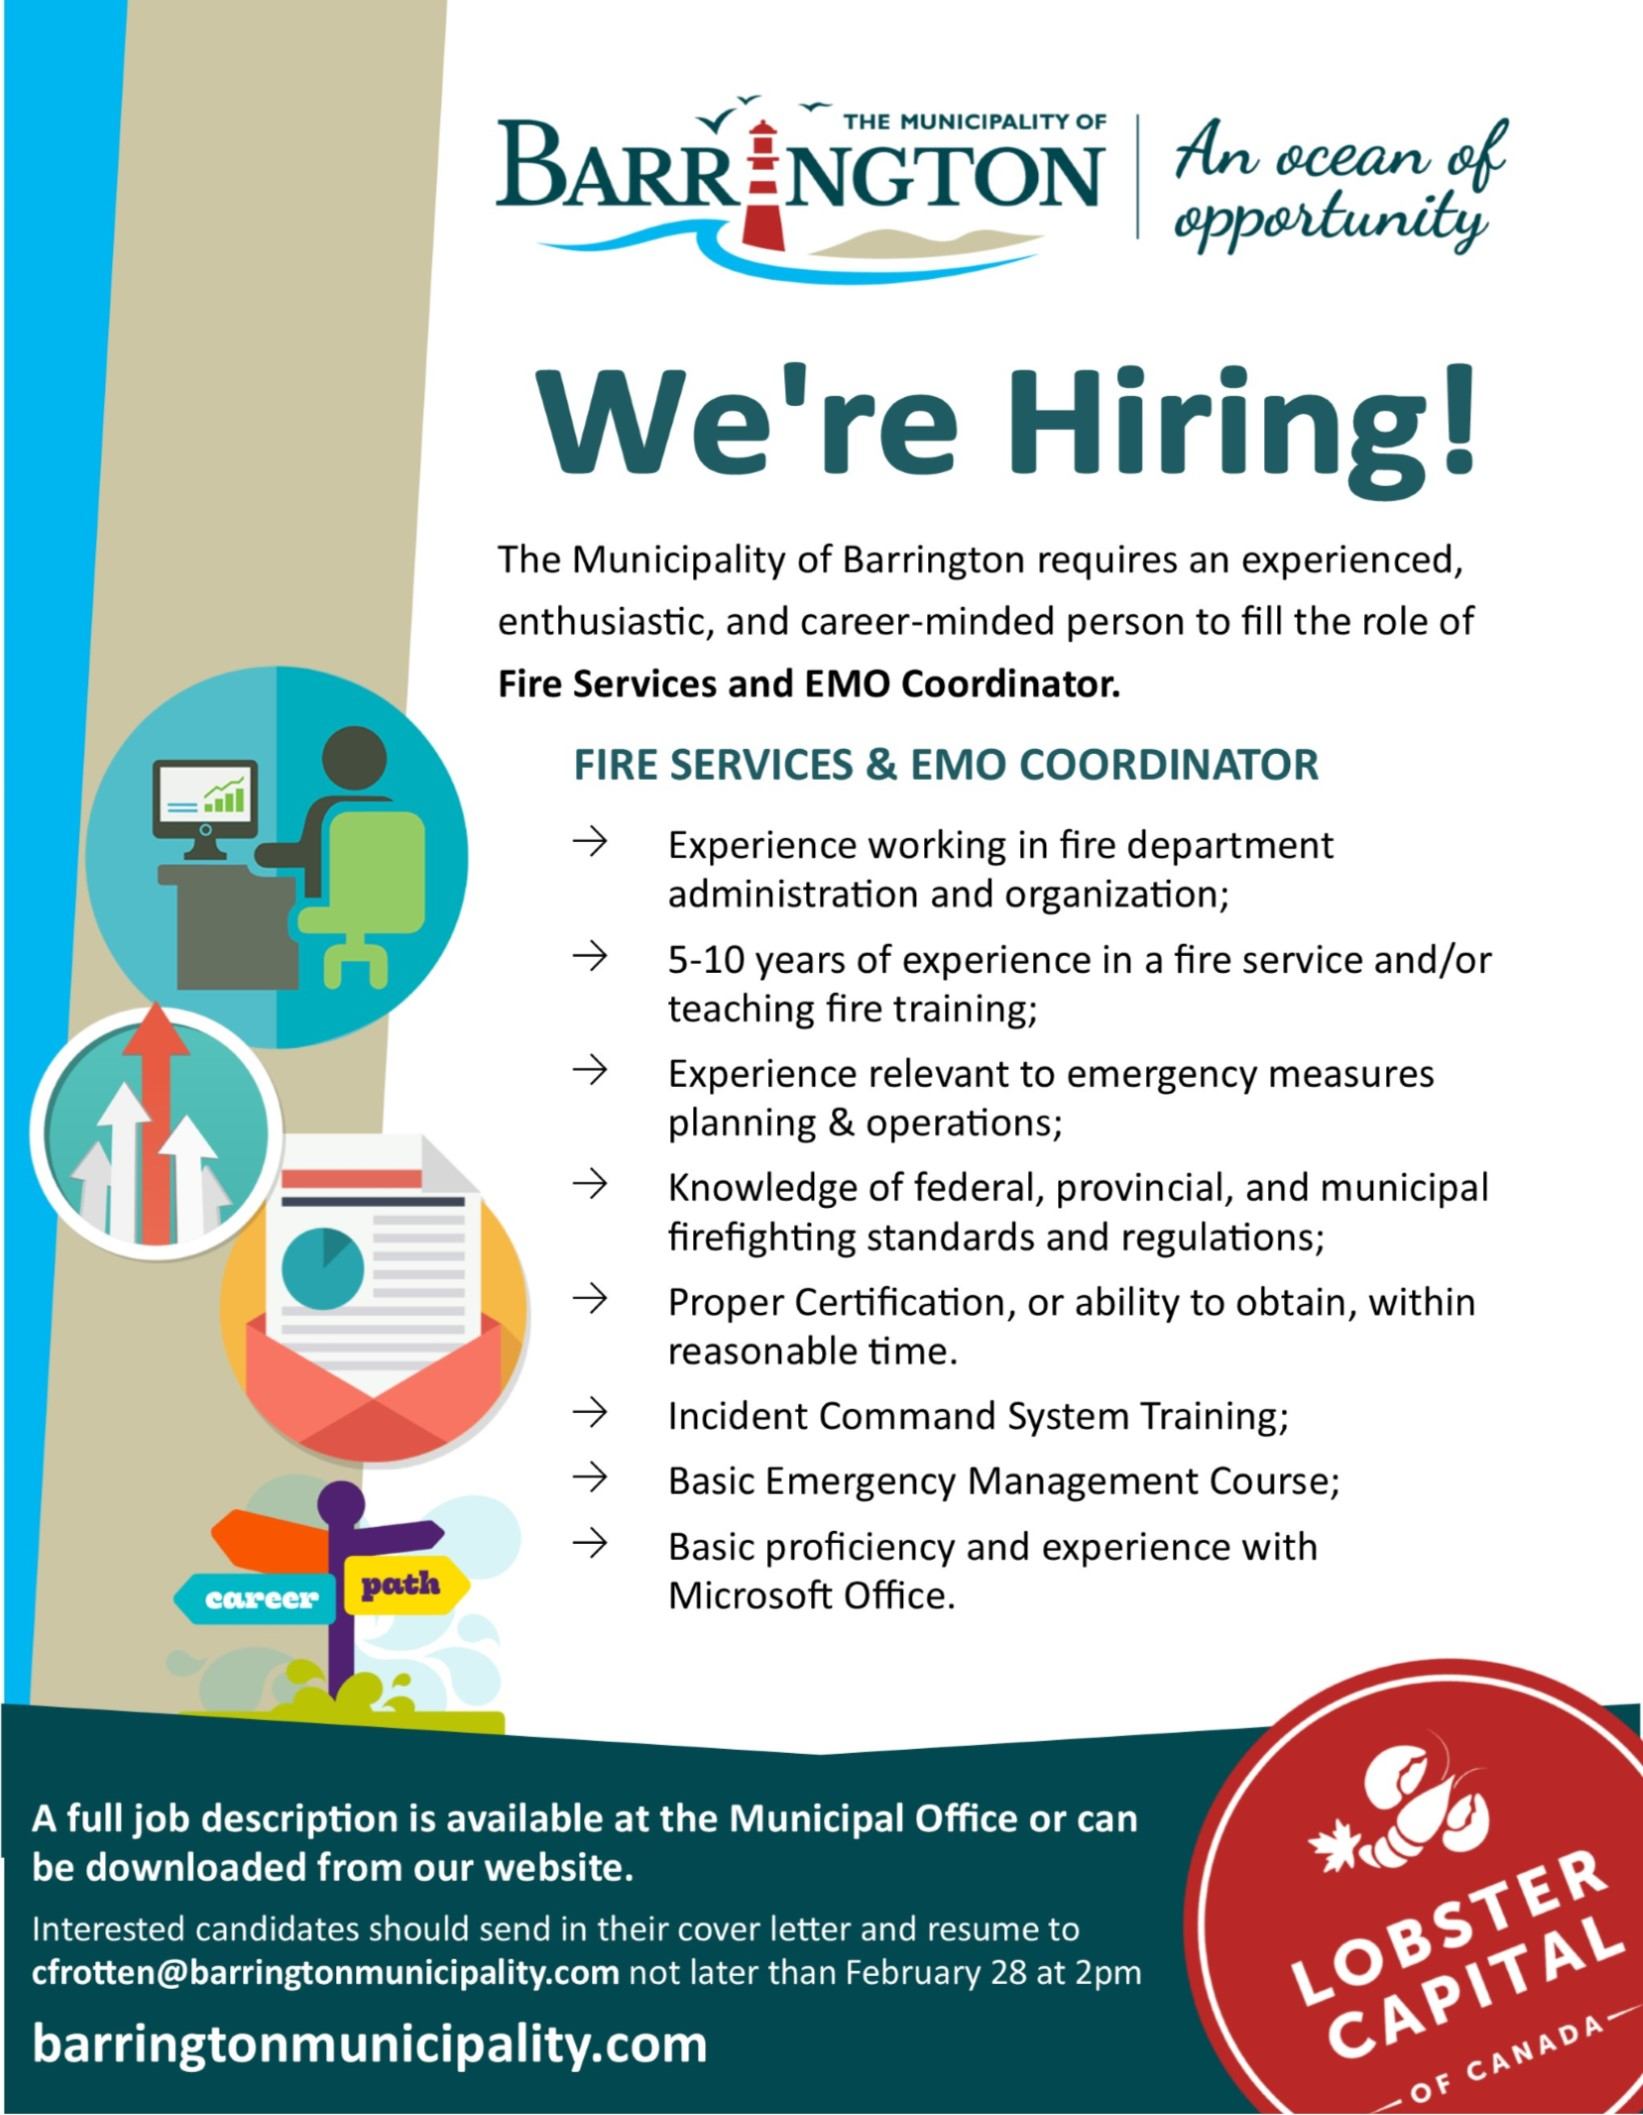 Job Opportunity - Fire Services & EMO Coordinator